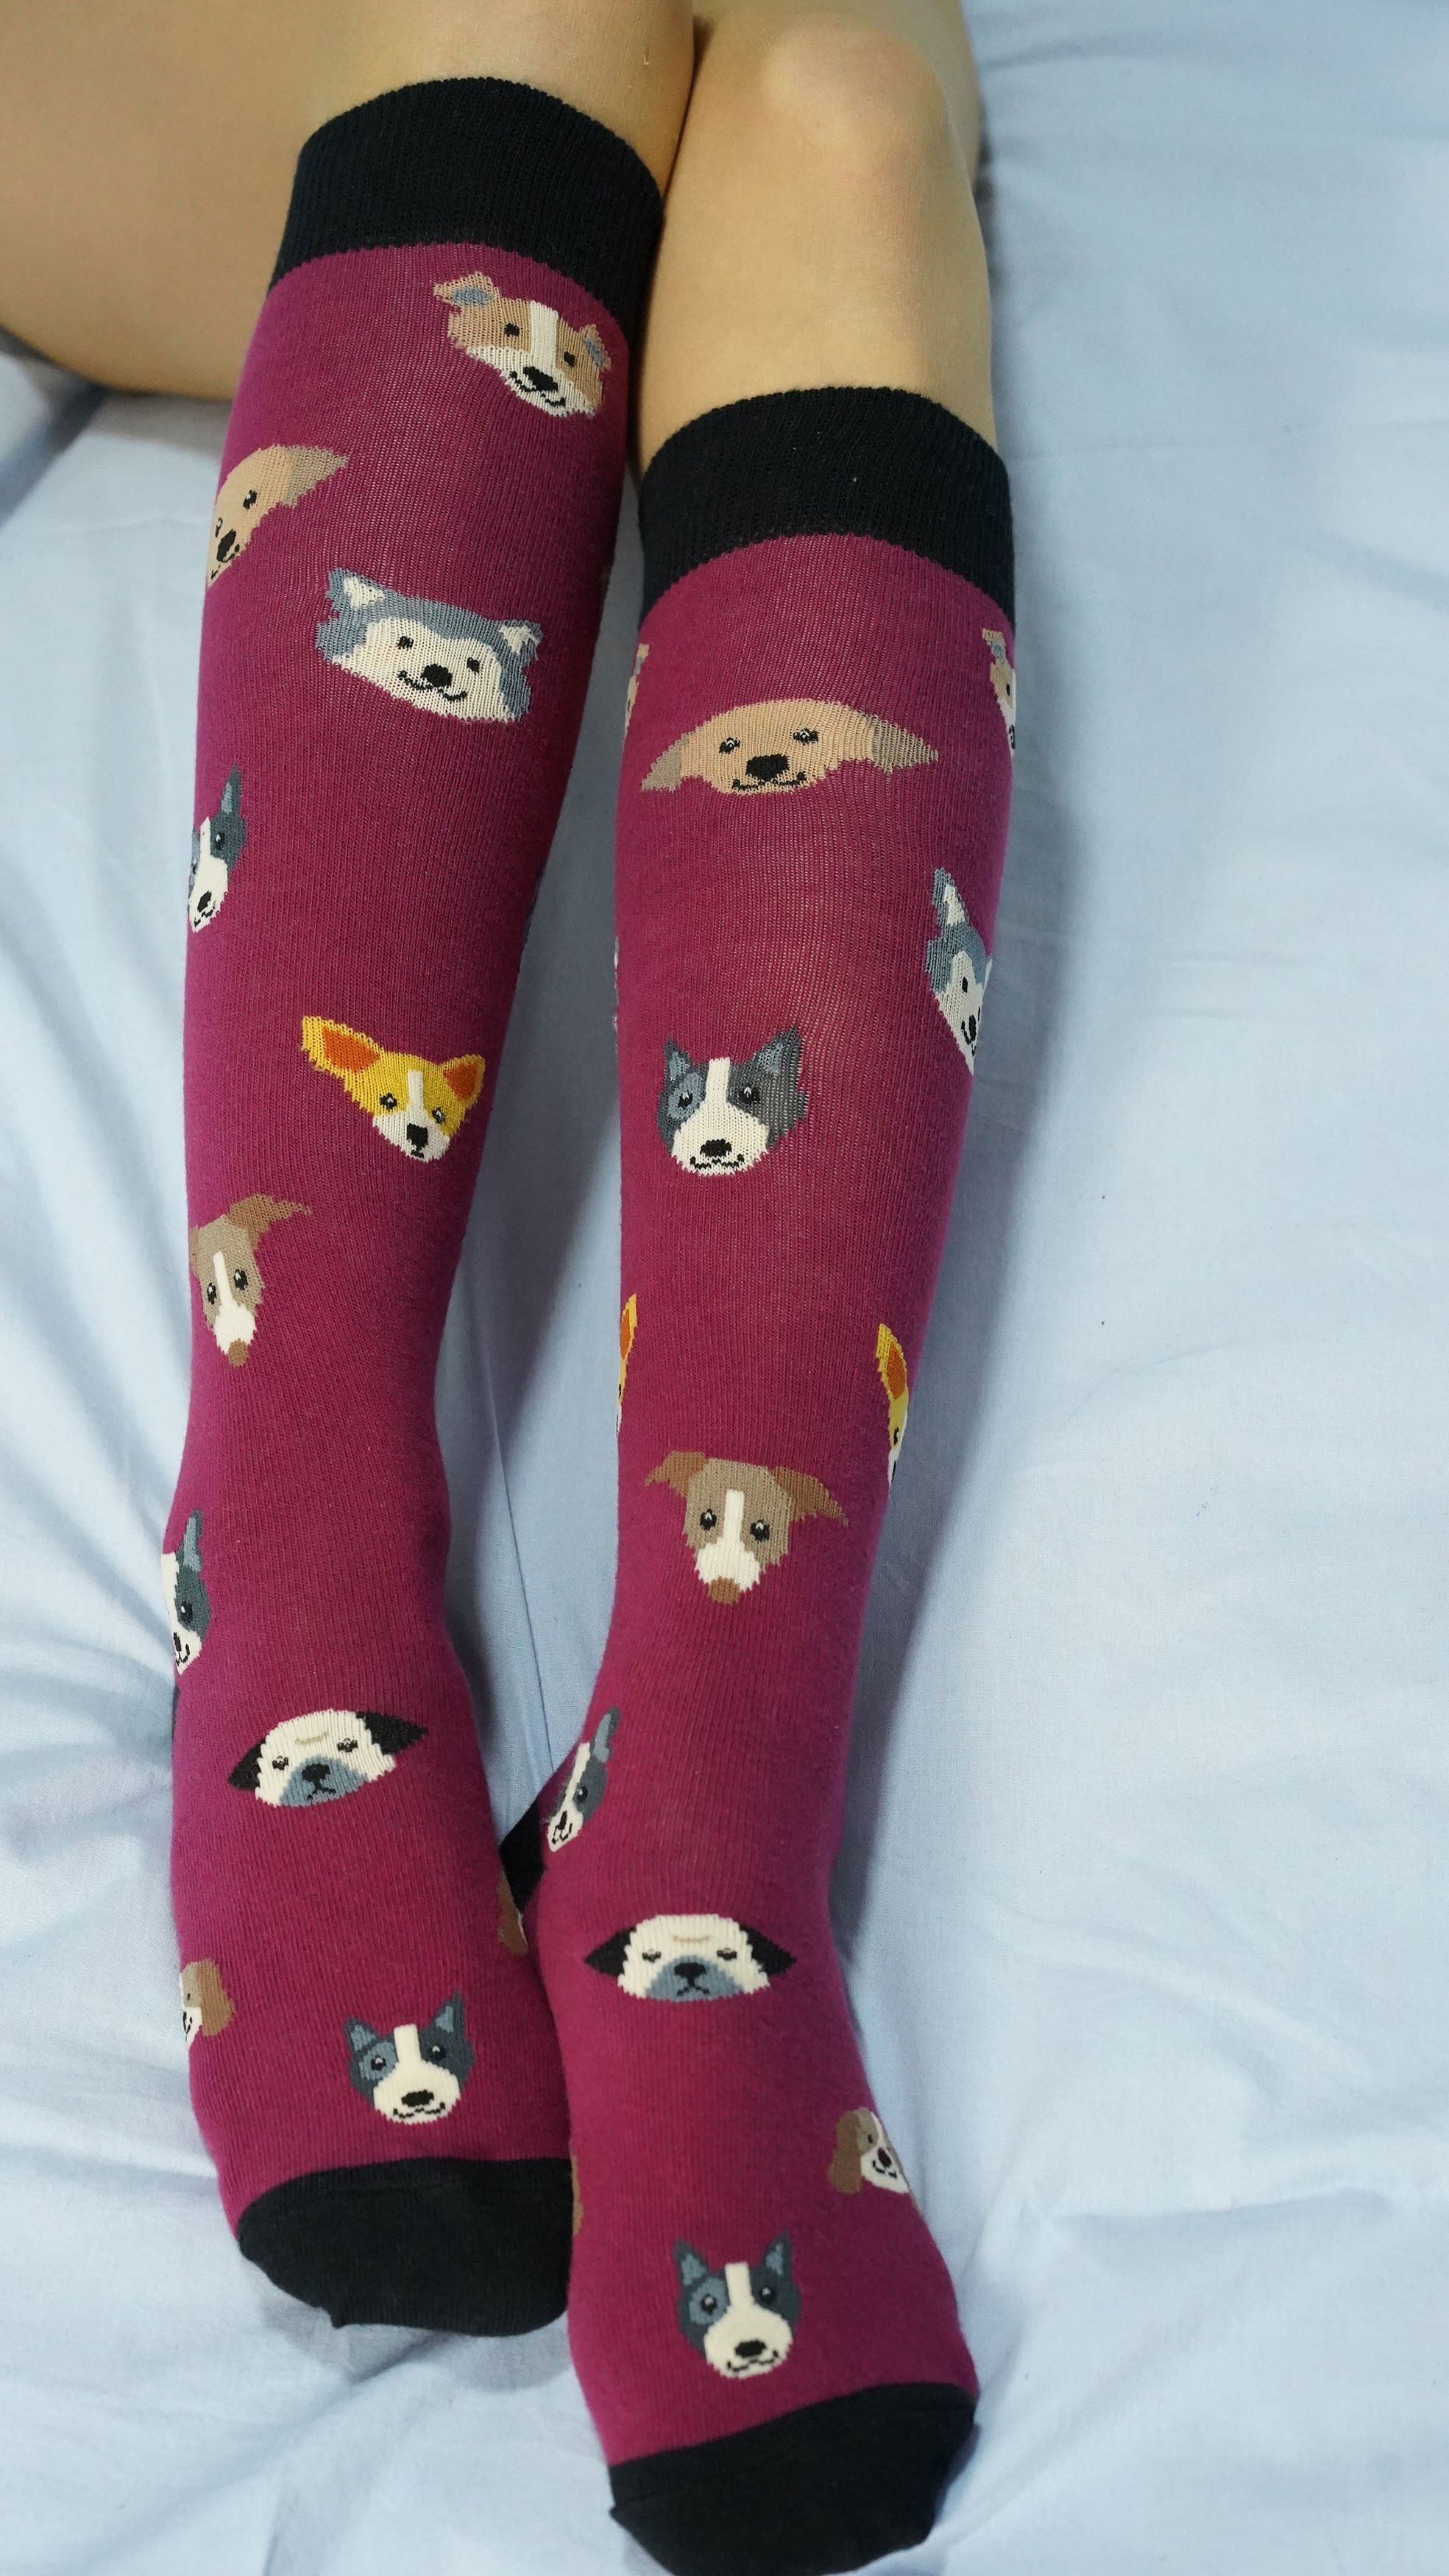 Women's Cute Dogs Knee High Socks Set